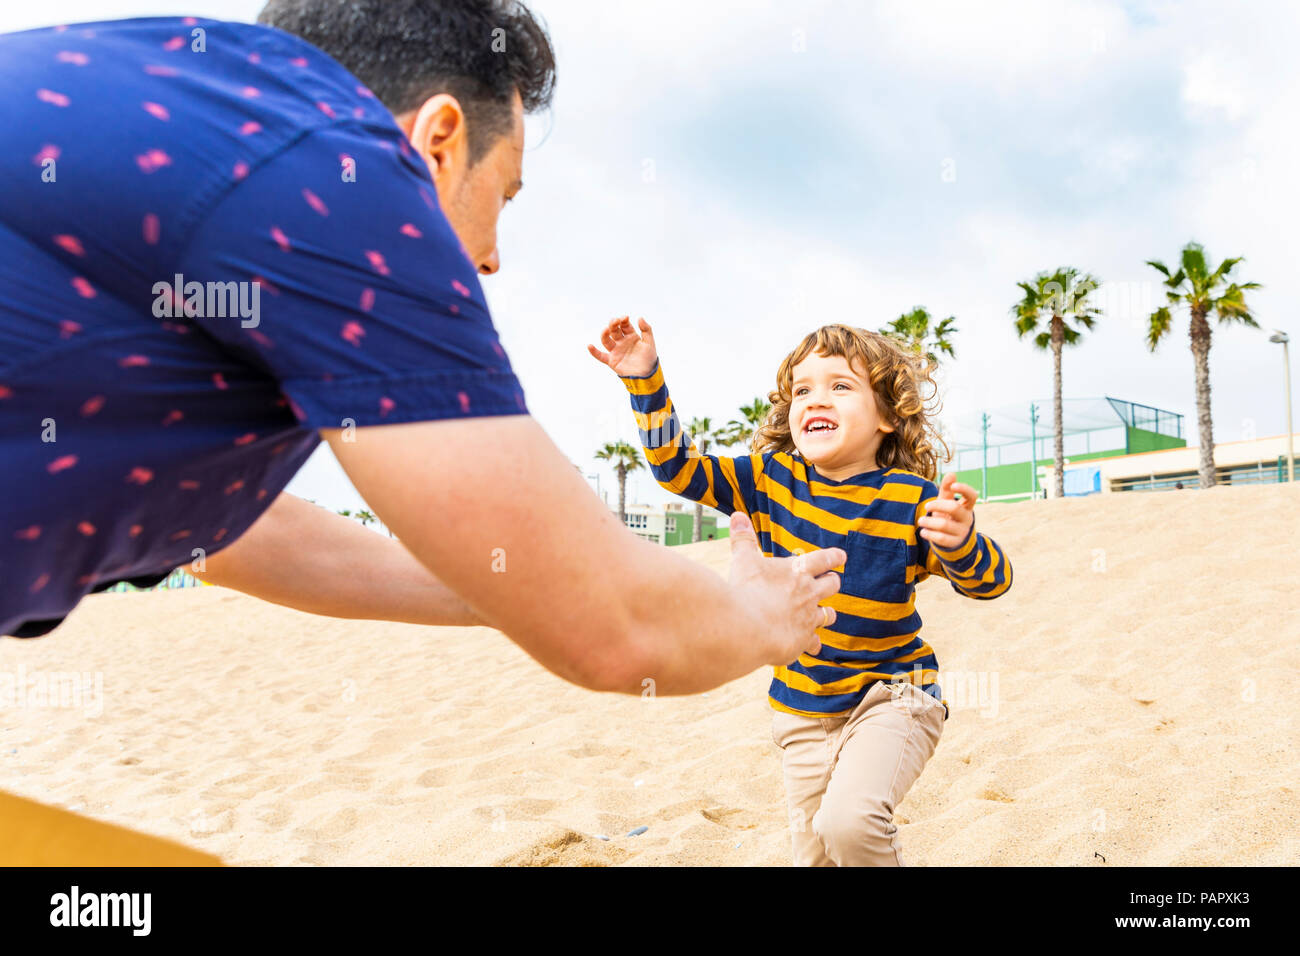 Spain, Barcelona, boy running toward his father on the beach - Stock Image